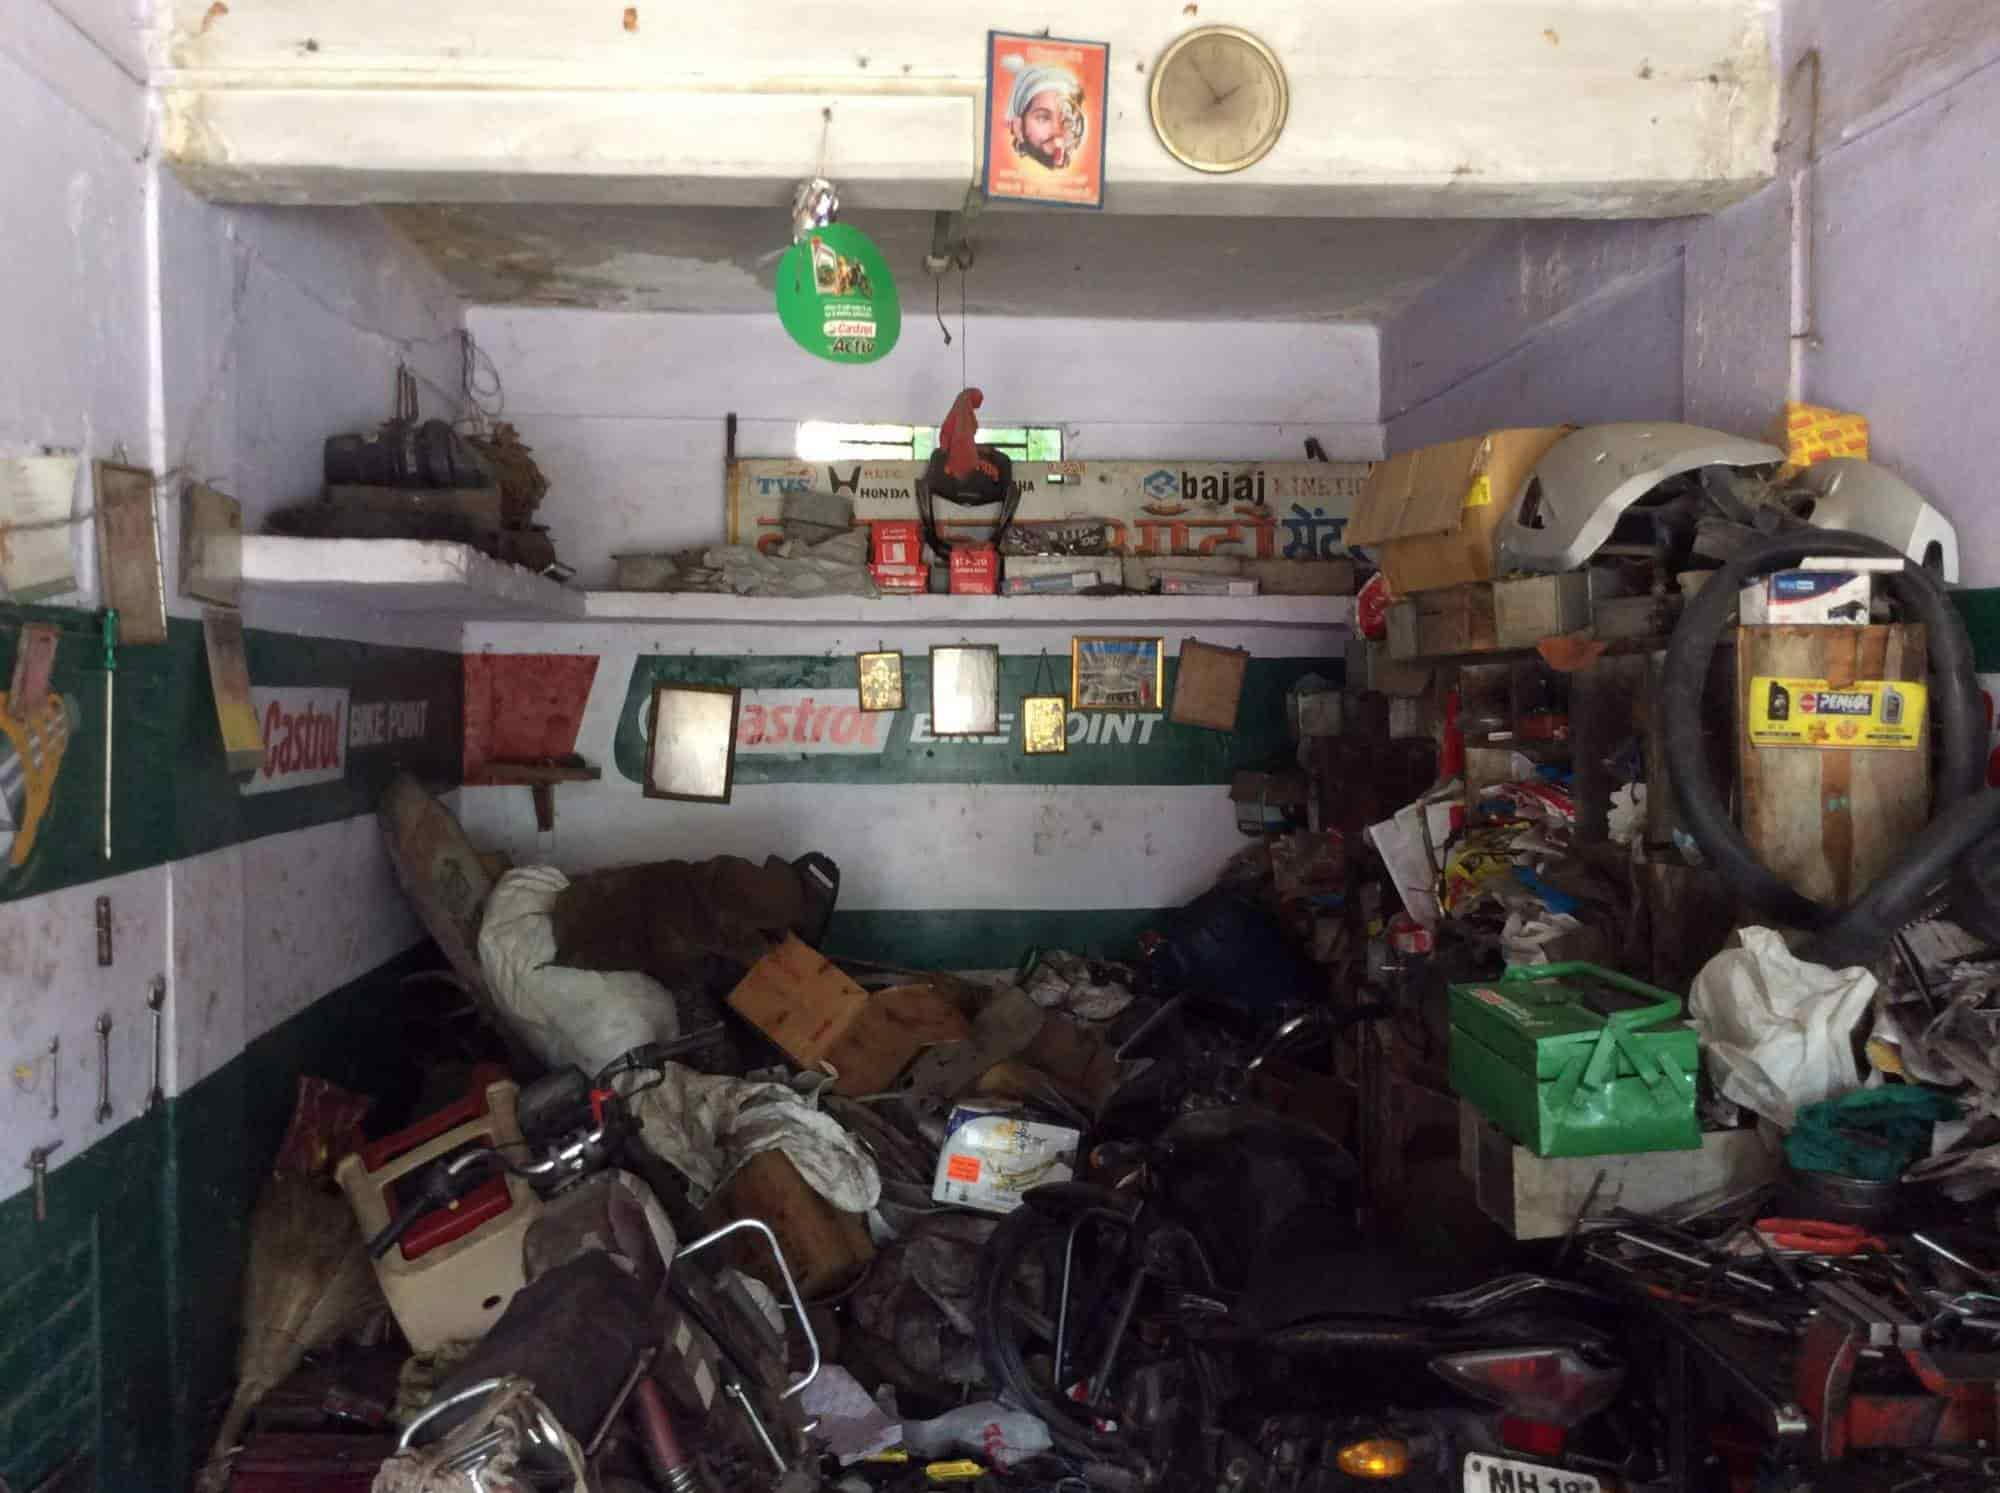 Garage Auto 95 Goodluck Auto Garage Photos Dhule Pictures Images Gallery